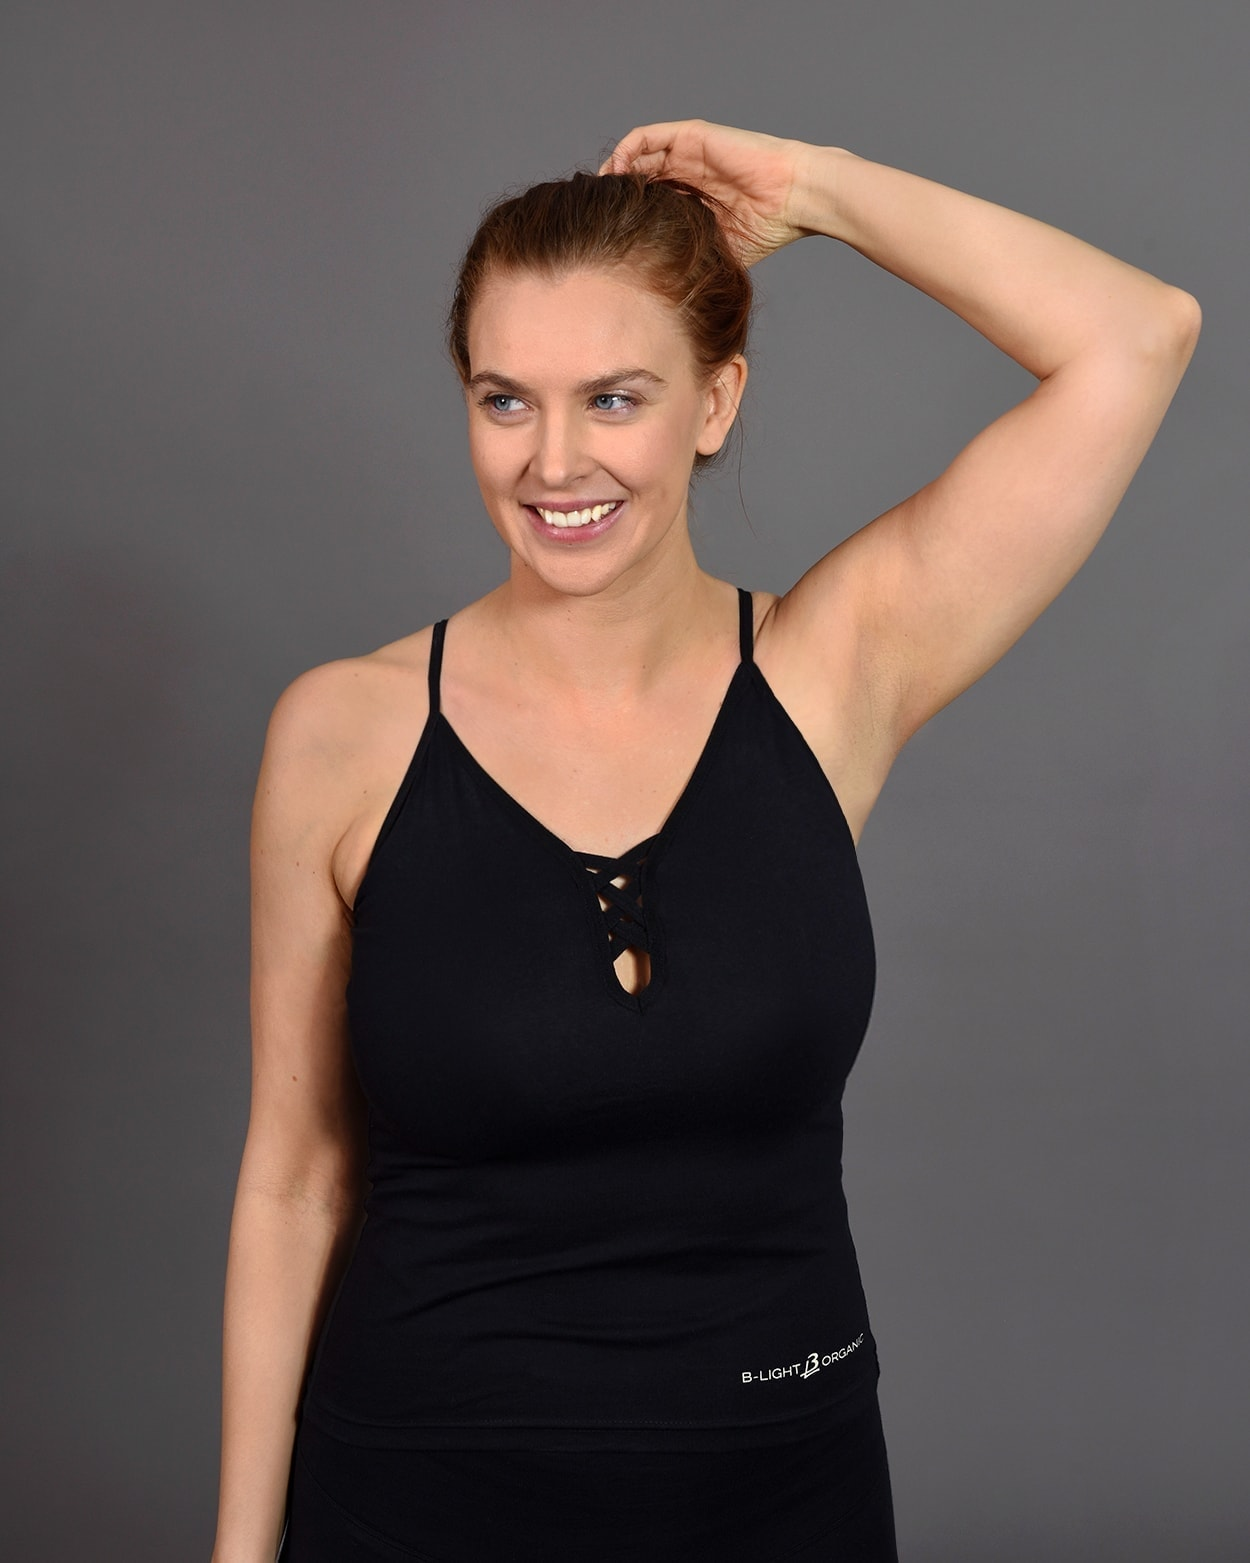 b-light-tank-top-organic-cotton-chek-black-1-1